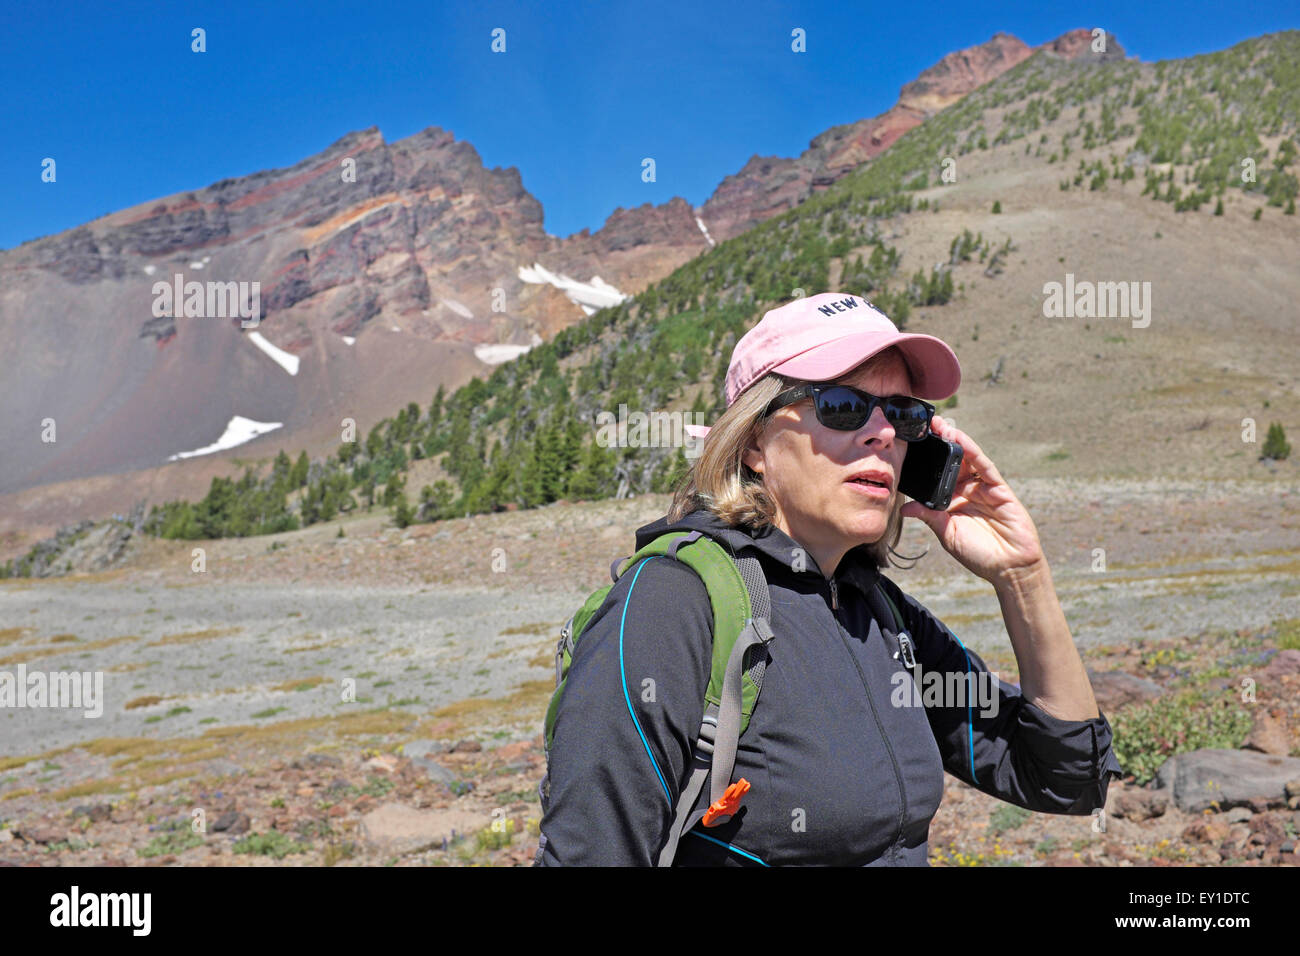 A female hiker in the wilderness talking to someone on her cell phone. - Stock Image